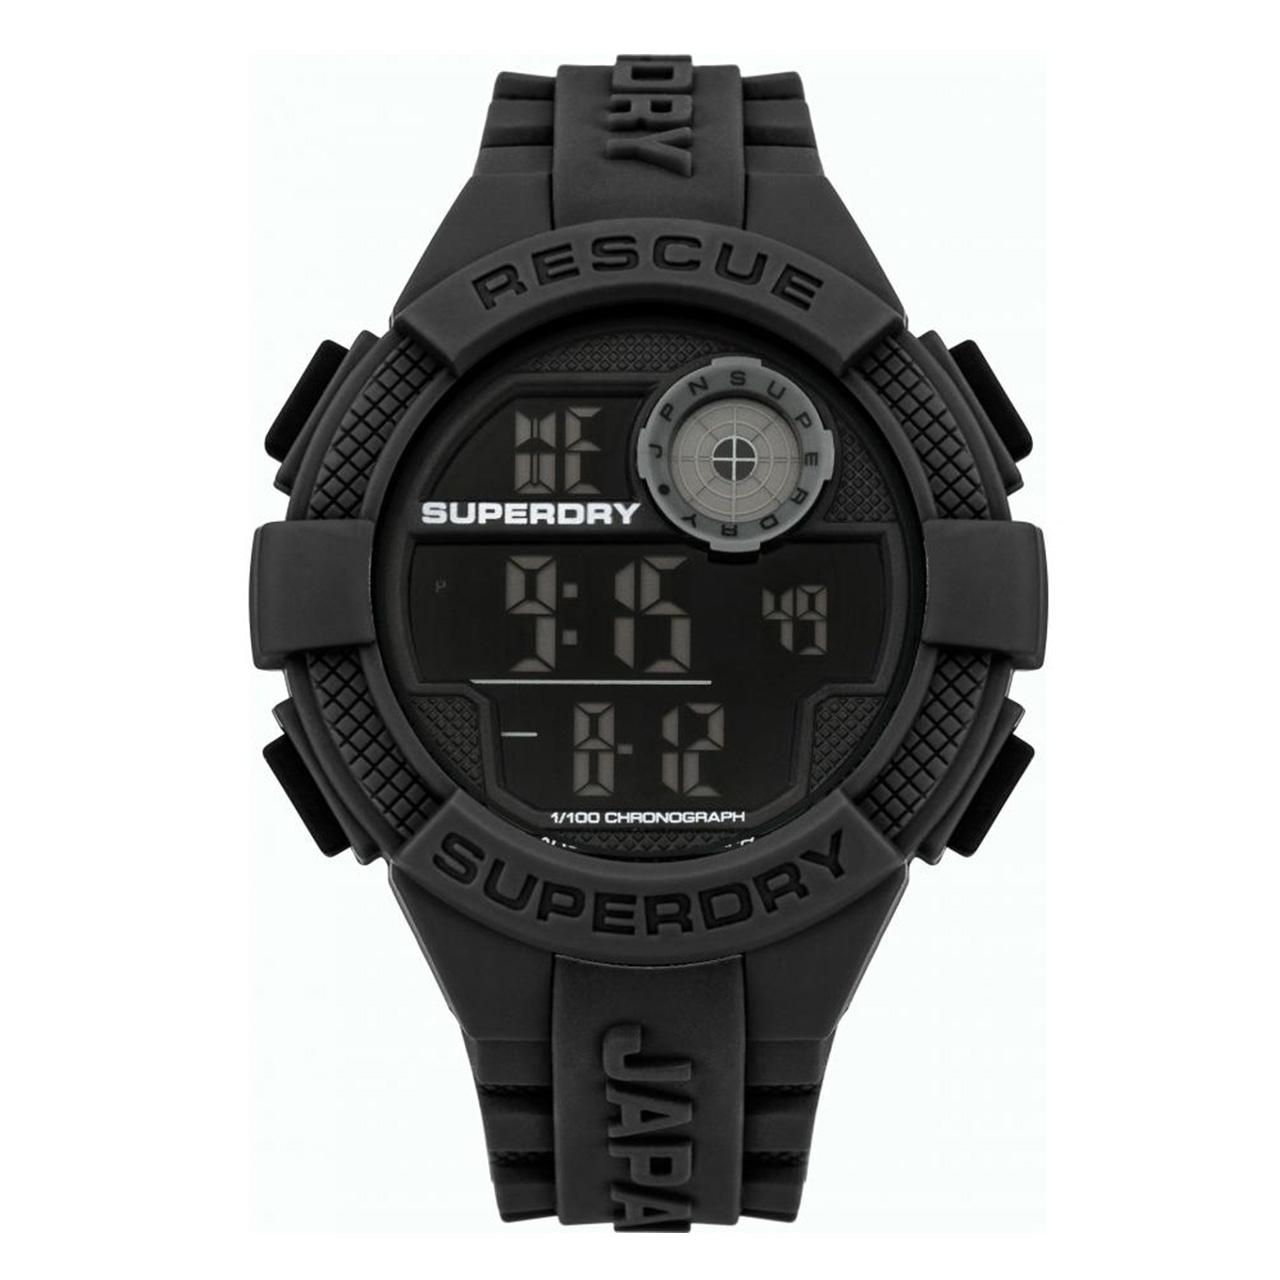 Superdry Jam Tangan Pria Strap Rubber Abu Syg193e Review Harga Police 13894jsub Black Resin Syg193b